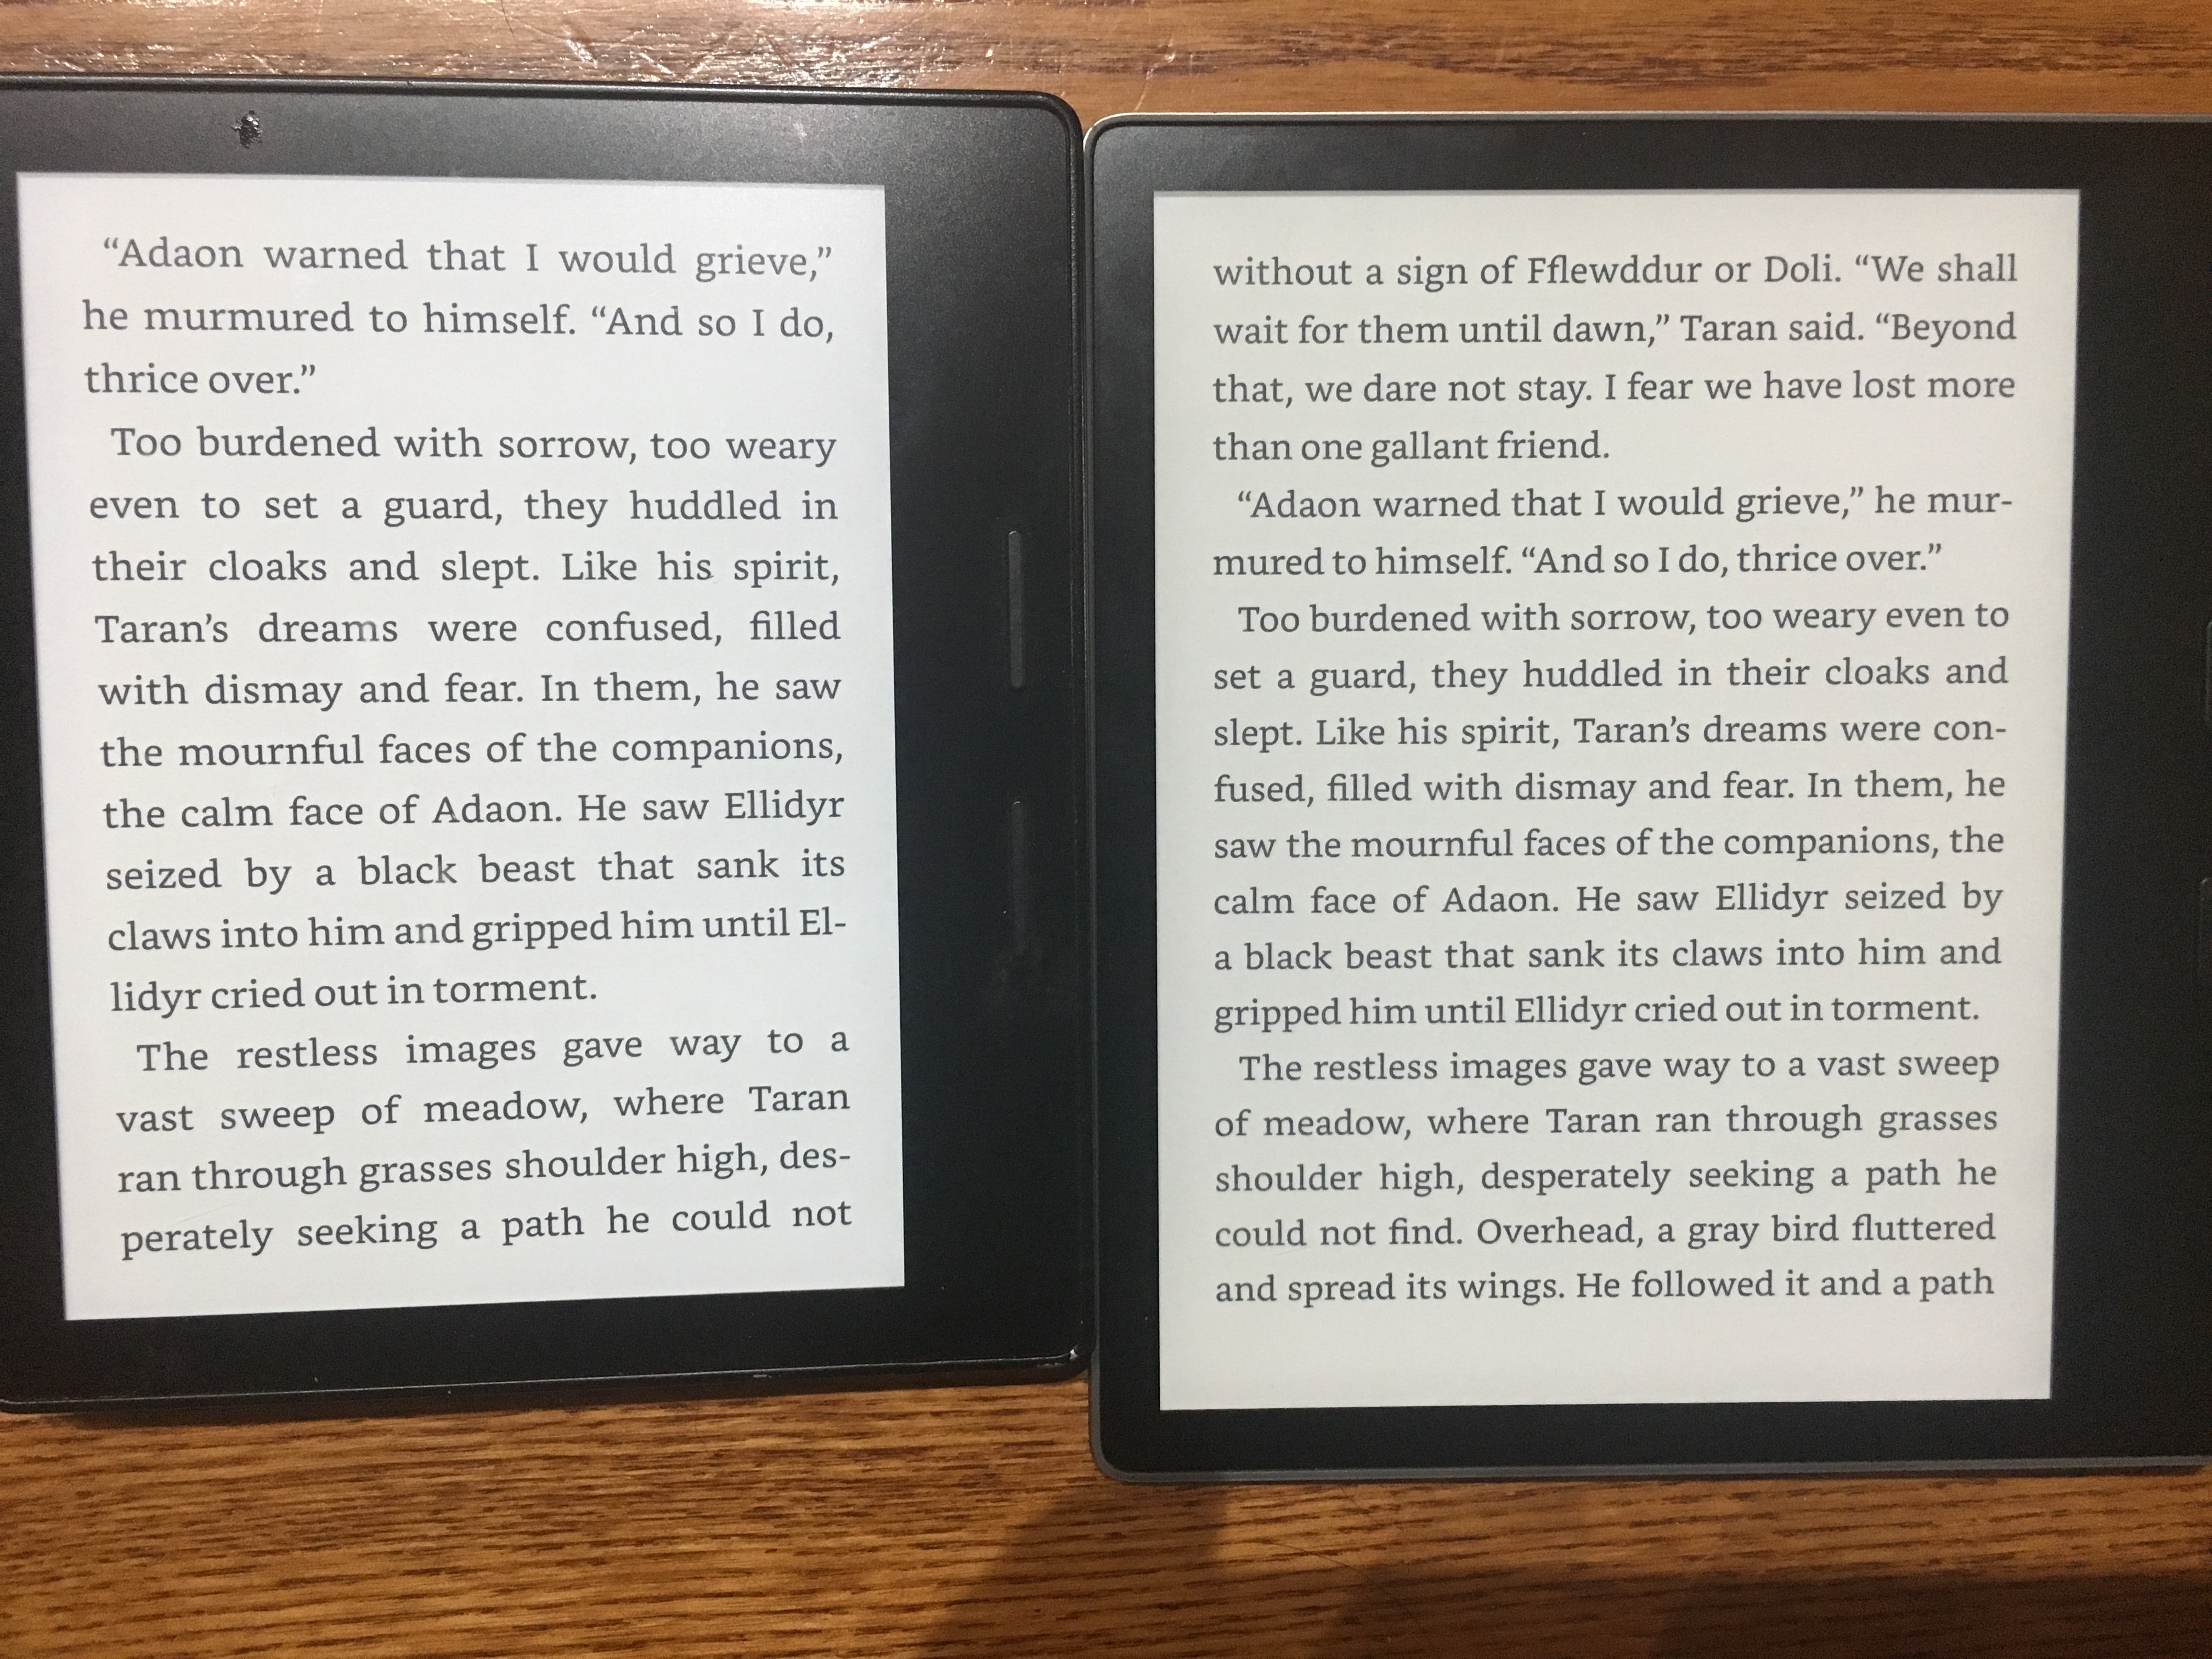 Thoughts Kindle Oasis (2nd Generation) - Bookwi se